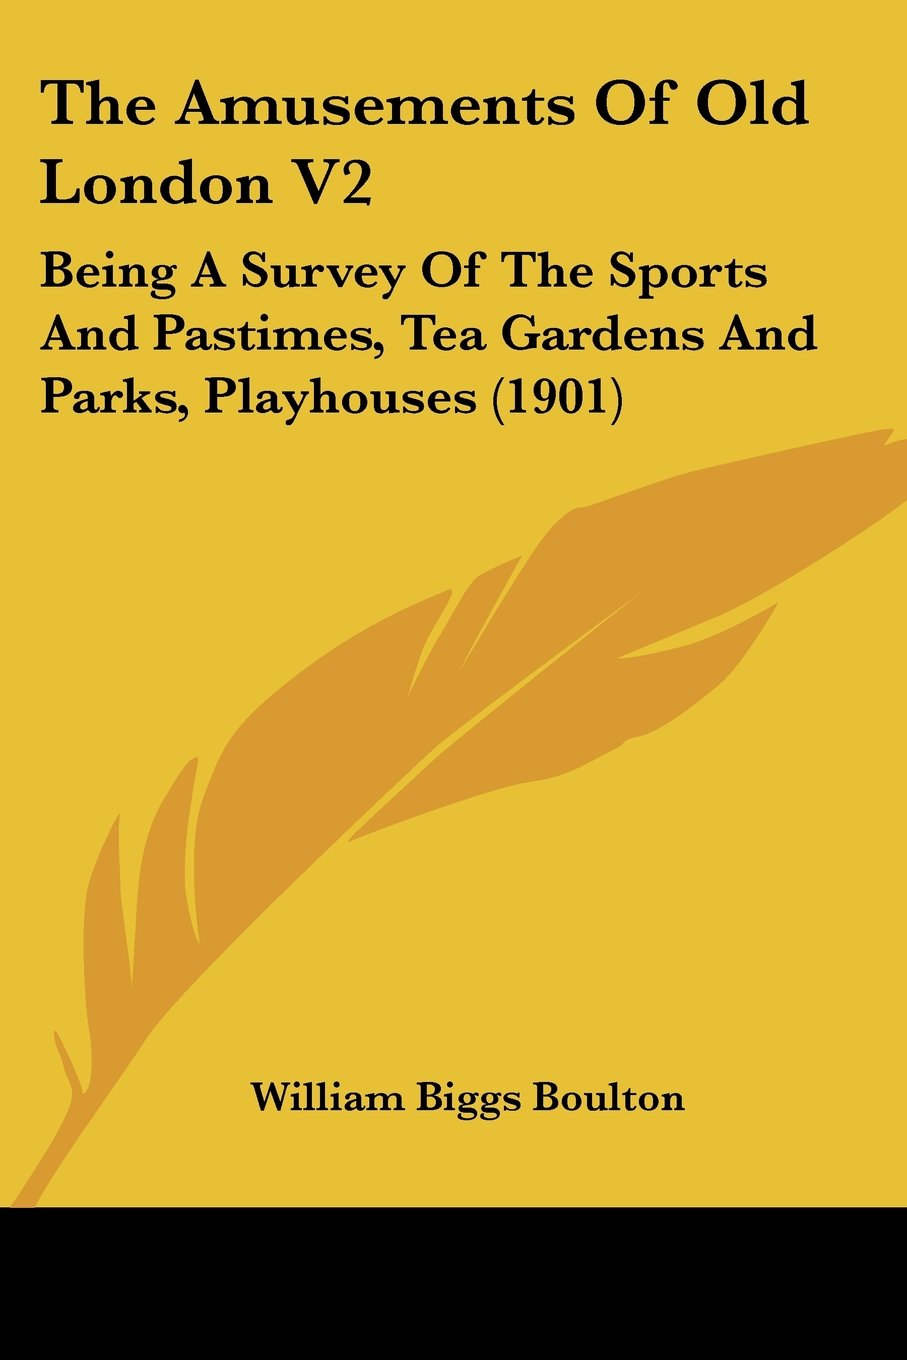 Download The Amusements Of Old London V2: Being A Survey Of The Sports And Pastimes, Tea Gardens And Parks, Playhouses (1901) pdf